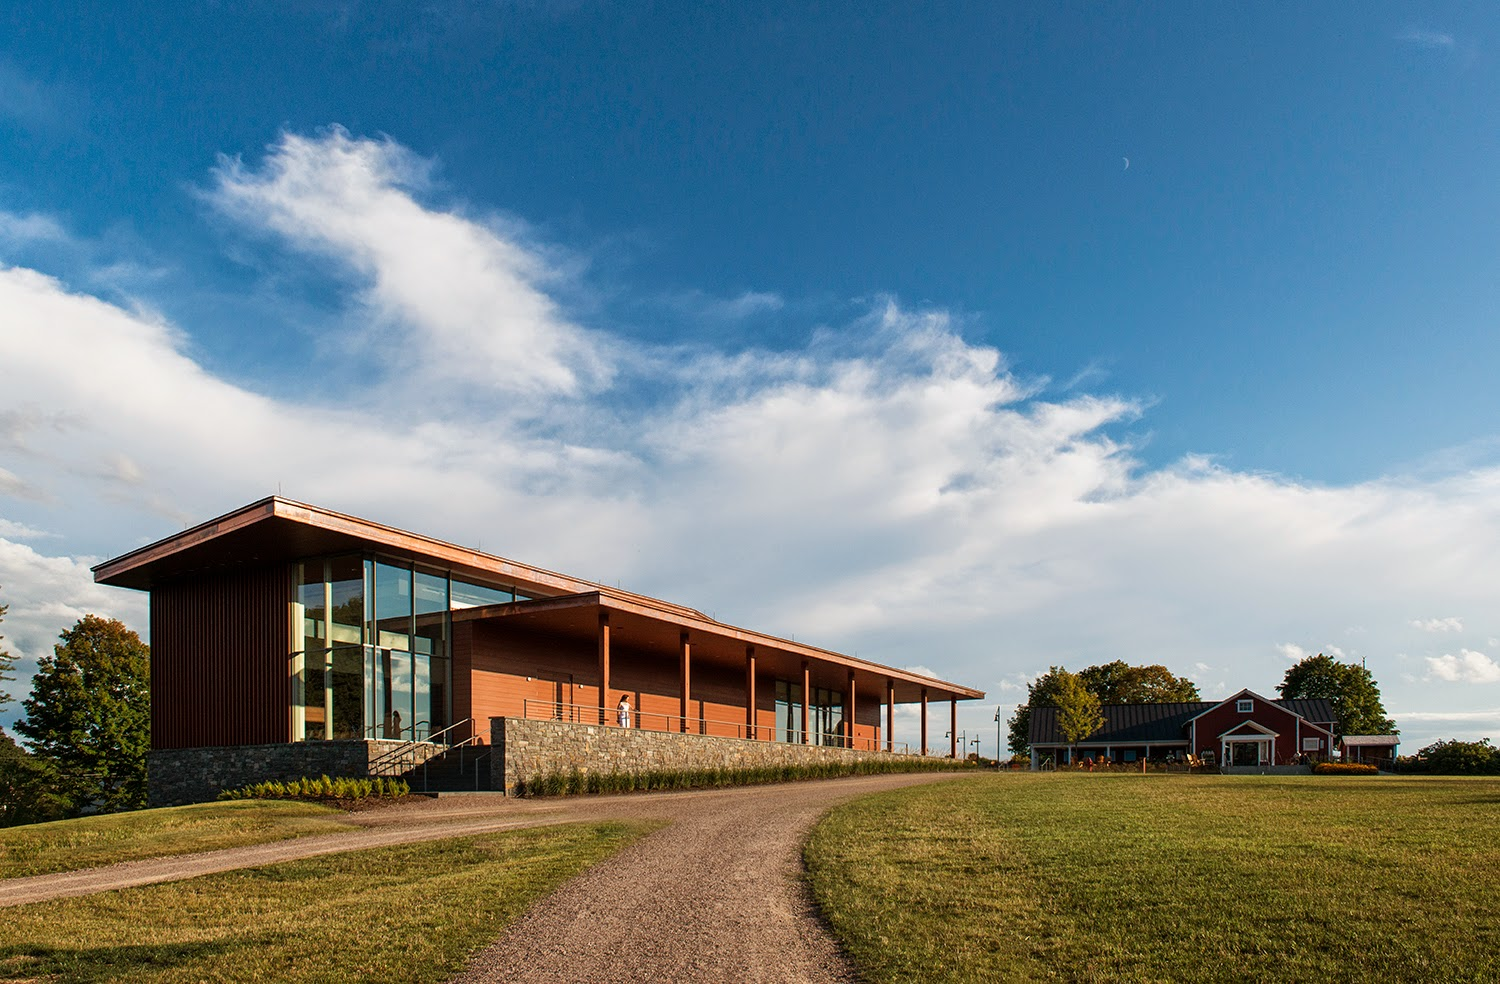 A Daily Dose Of Architecture: Pizzagalli Center For Art